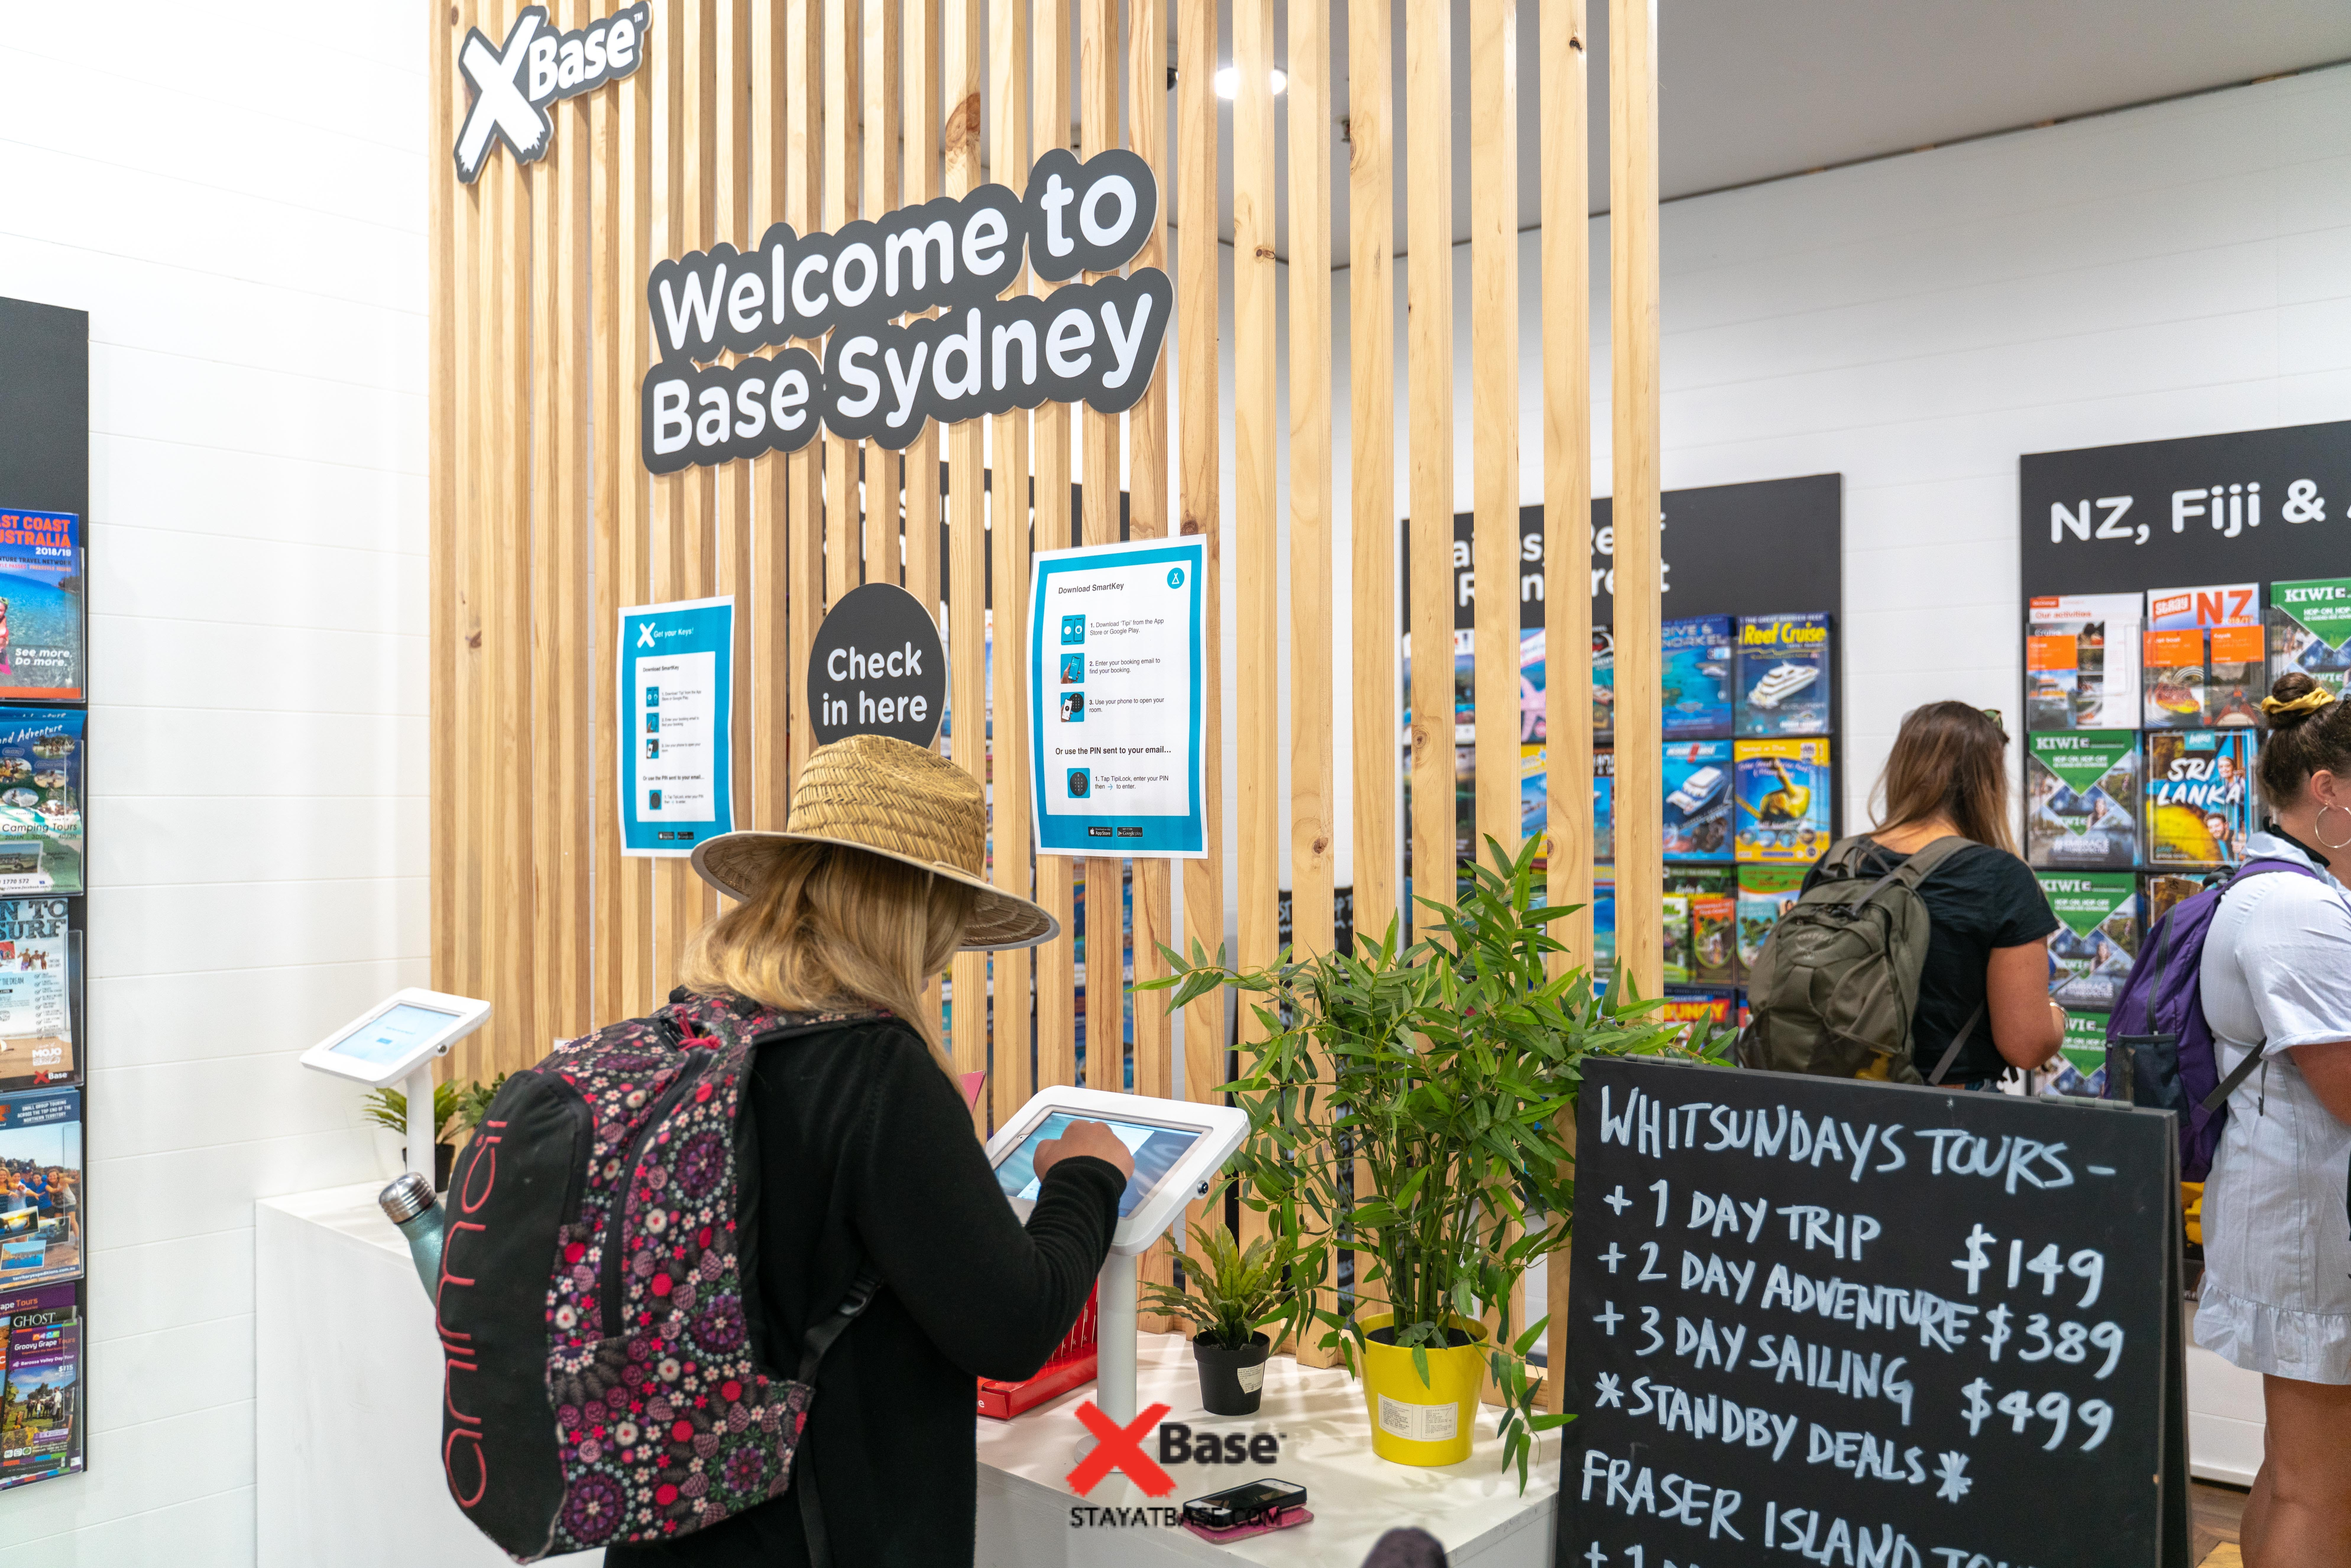 self check in at base backpackers sydney